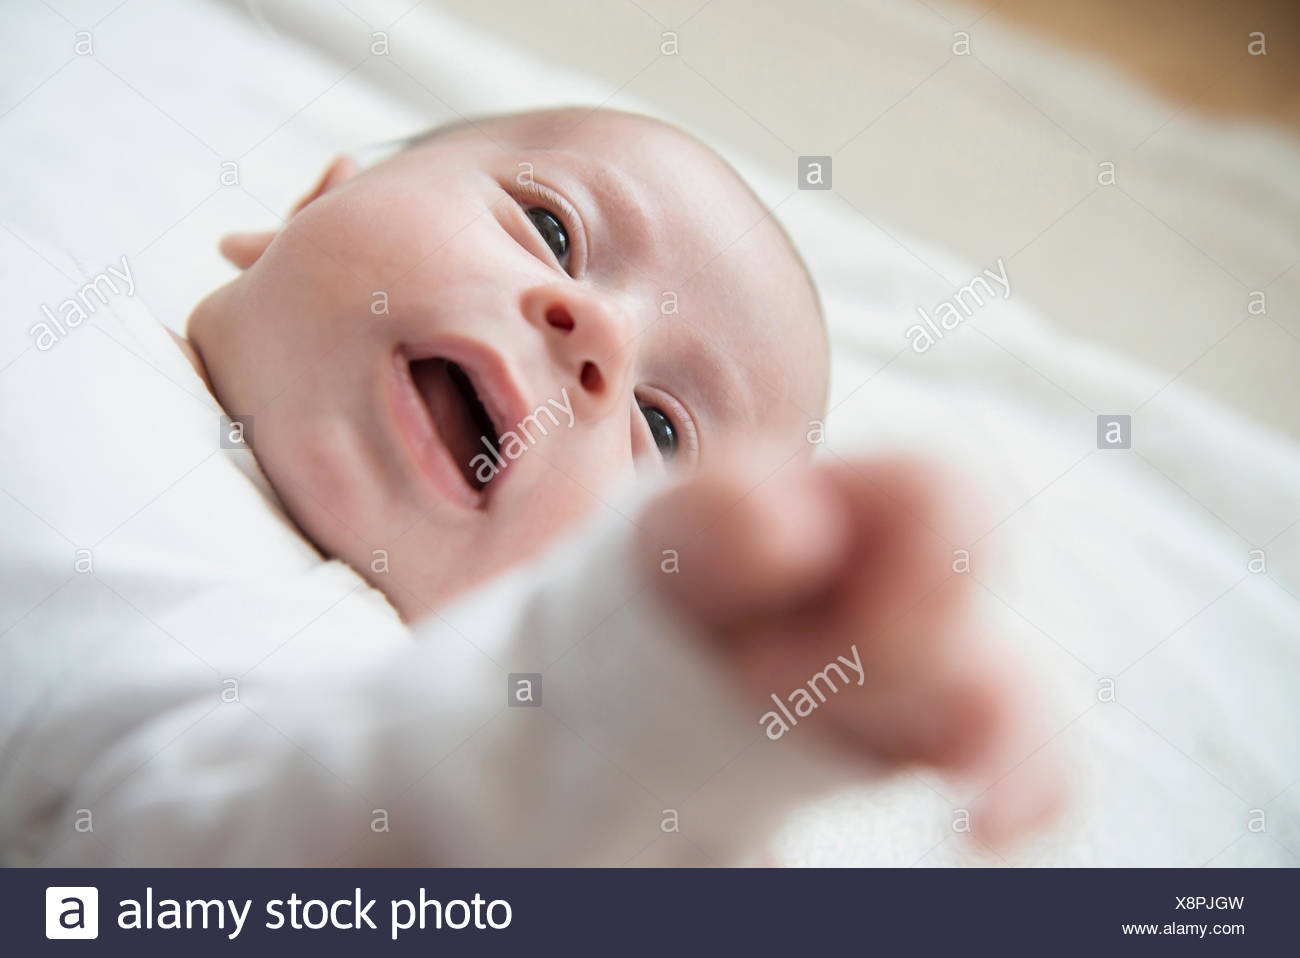 Baby boy lying on bed with mouth open - Stock Image